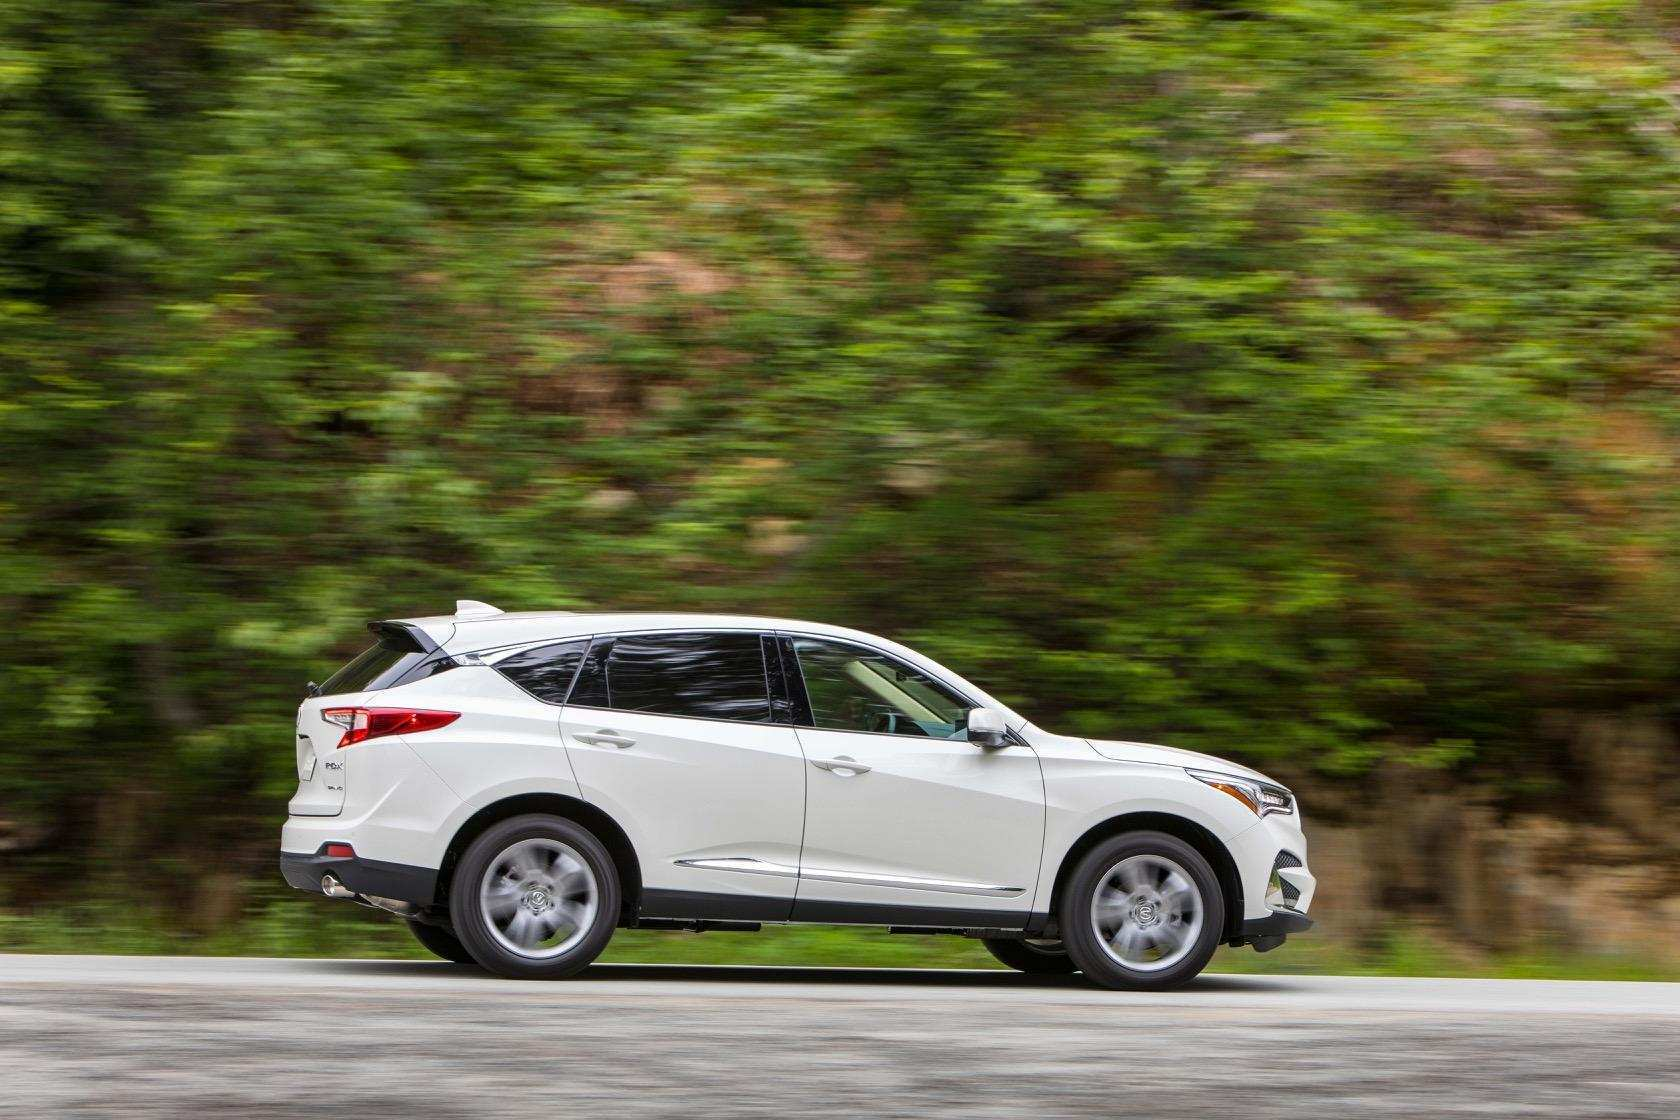 57 New The Pictures Of 2019 Acura Rdx Price Spesification for The Pictures Of 2019 Acura Rdx Price